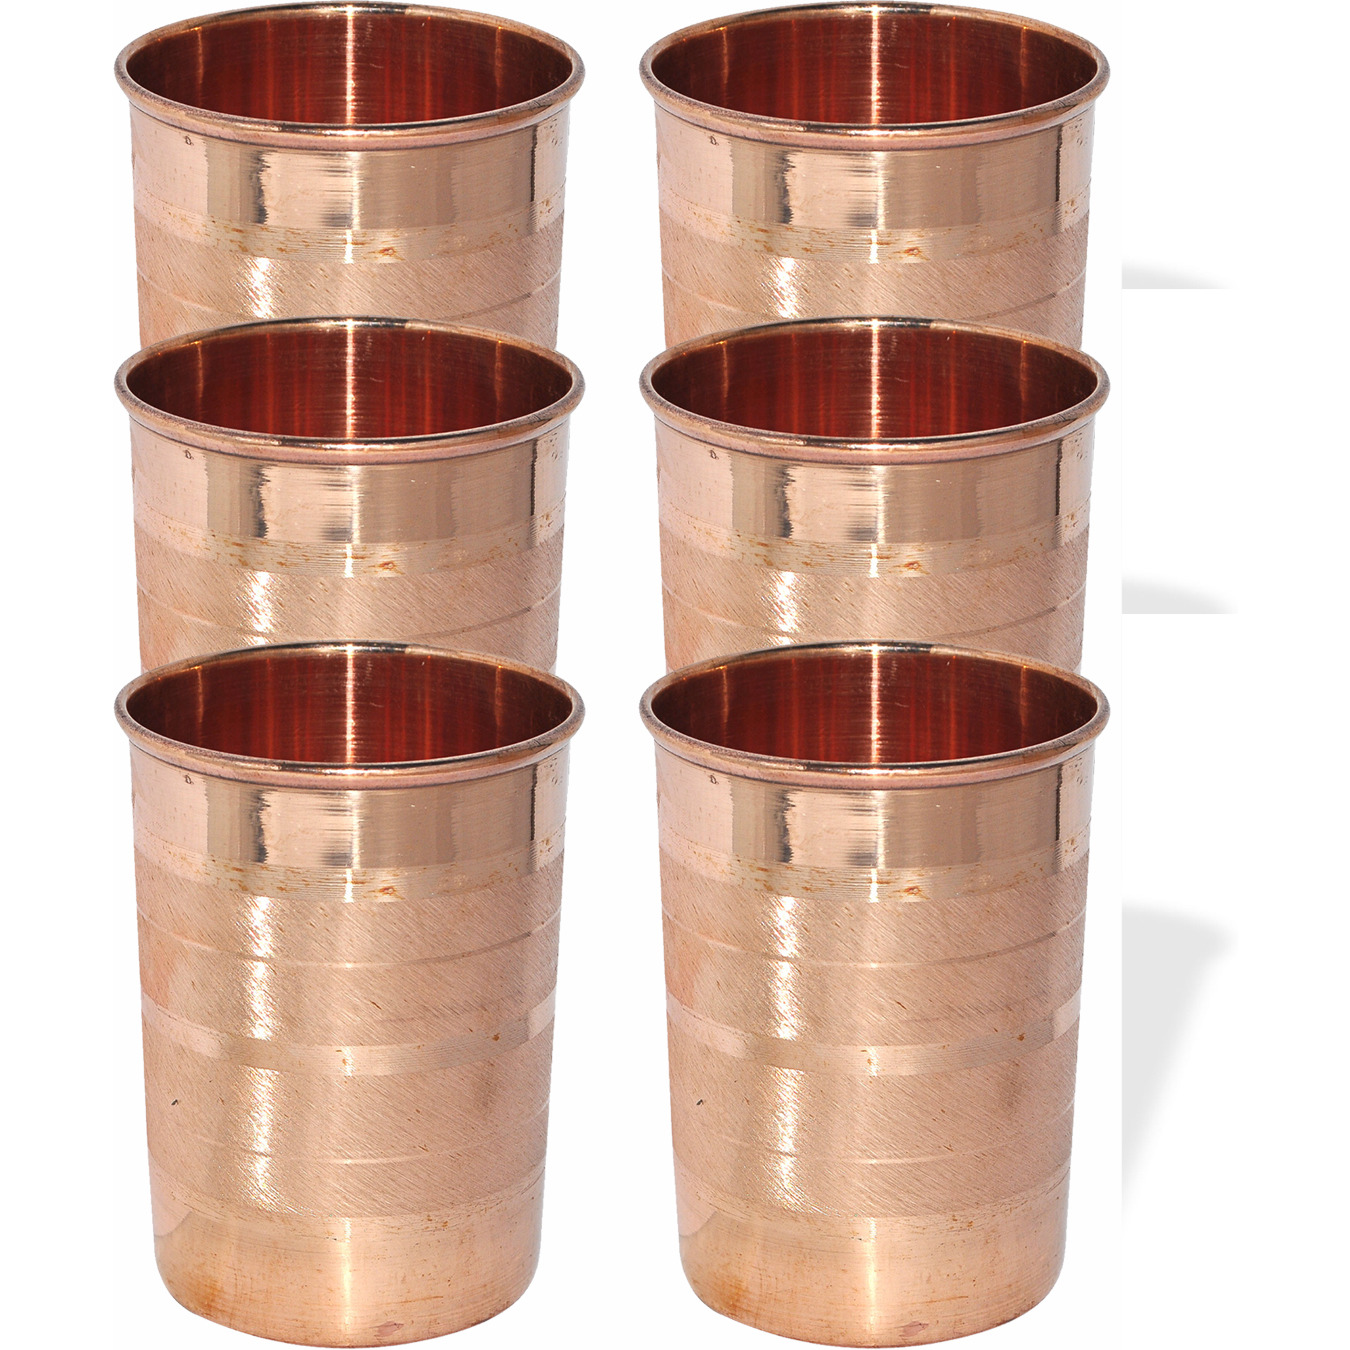 Set of 6 - Prisha India Craft B. Copper Cup Water Tumbler - Handmade Water Glasses - Traveller's Copper Mug for Ayurveda Benefits